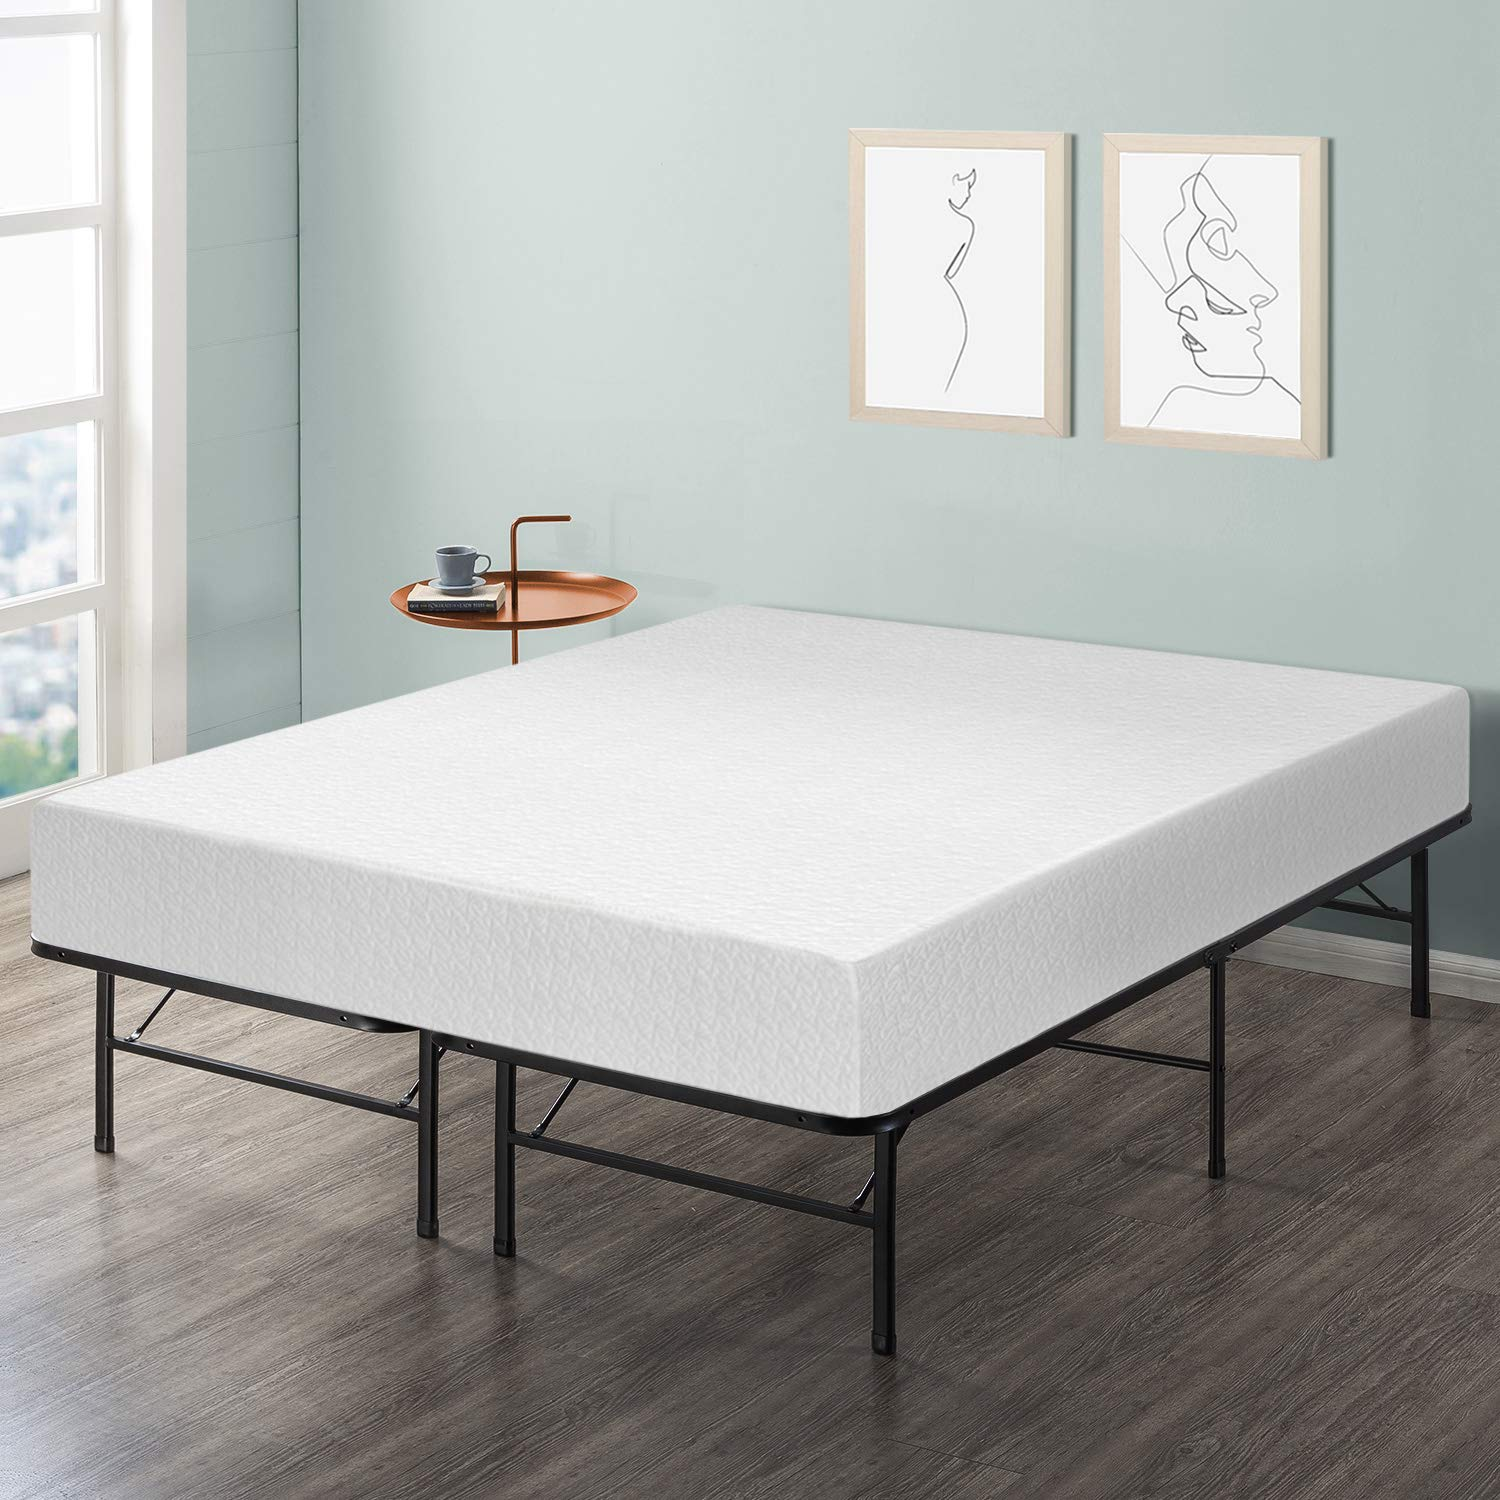 Best Price Mattress 10'' Memory Foam Mattress and Bed Frame Set, King by Best Price Mattress